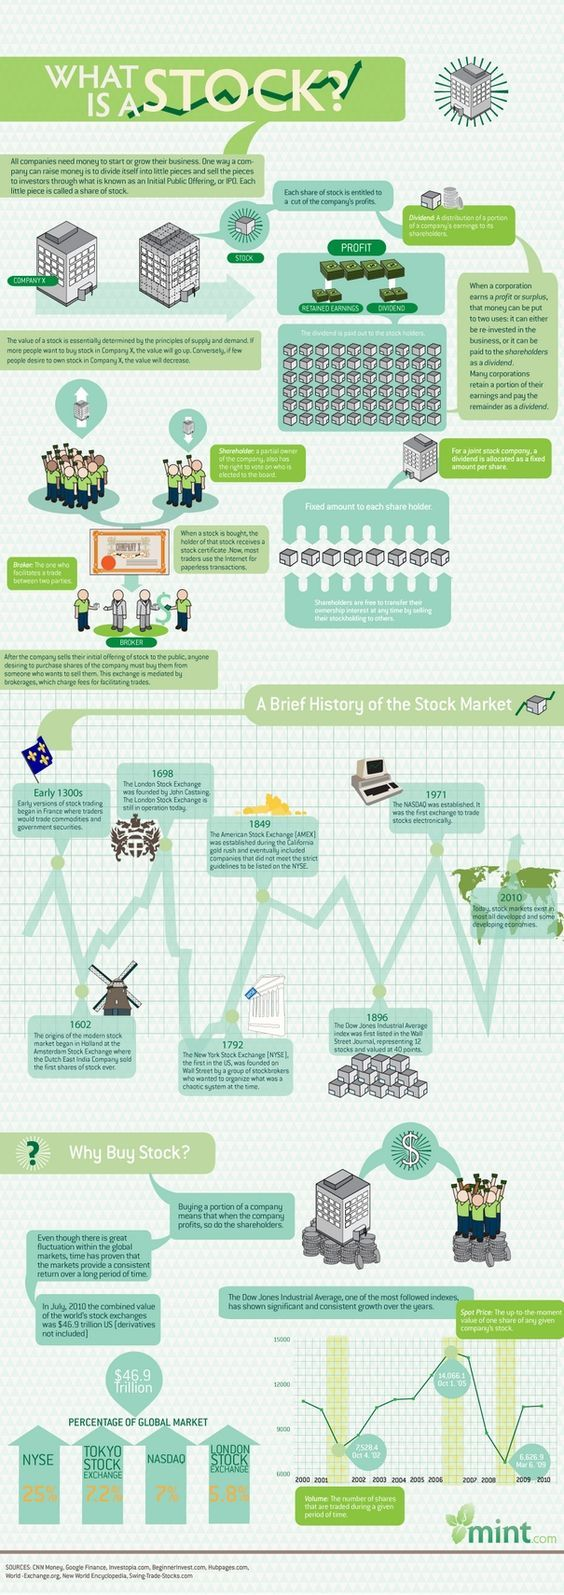 Stock Market Explained in Simple [Infographic] - history timeline, infografía, infografica, infografik, INFOGRAPHIC, infographique, london stock exchange, nasdaq, NYSE, Stock Market, Timeline, Tokyo Stock,